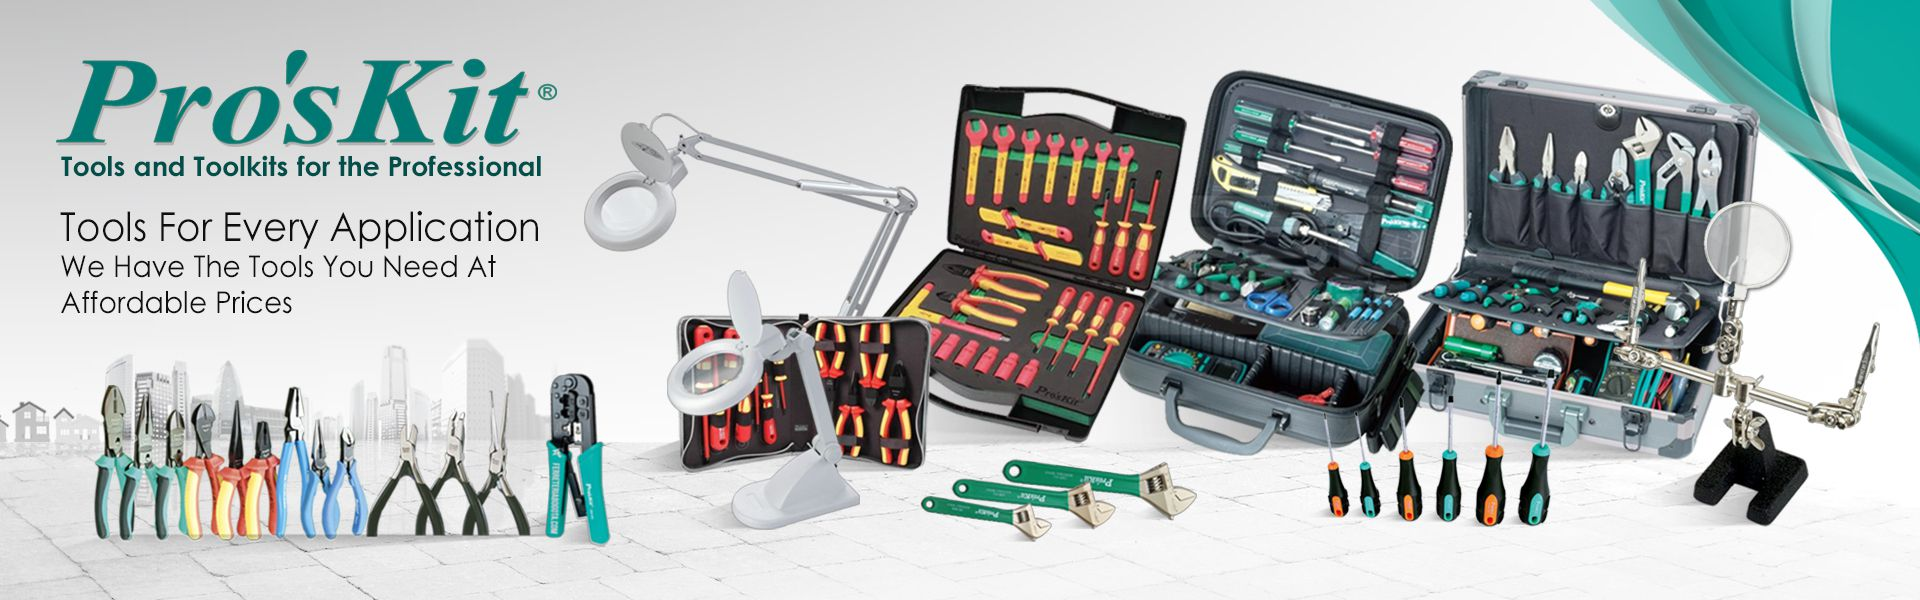 All Hand Tools And Tool Kits